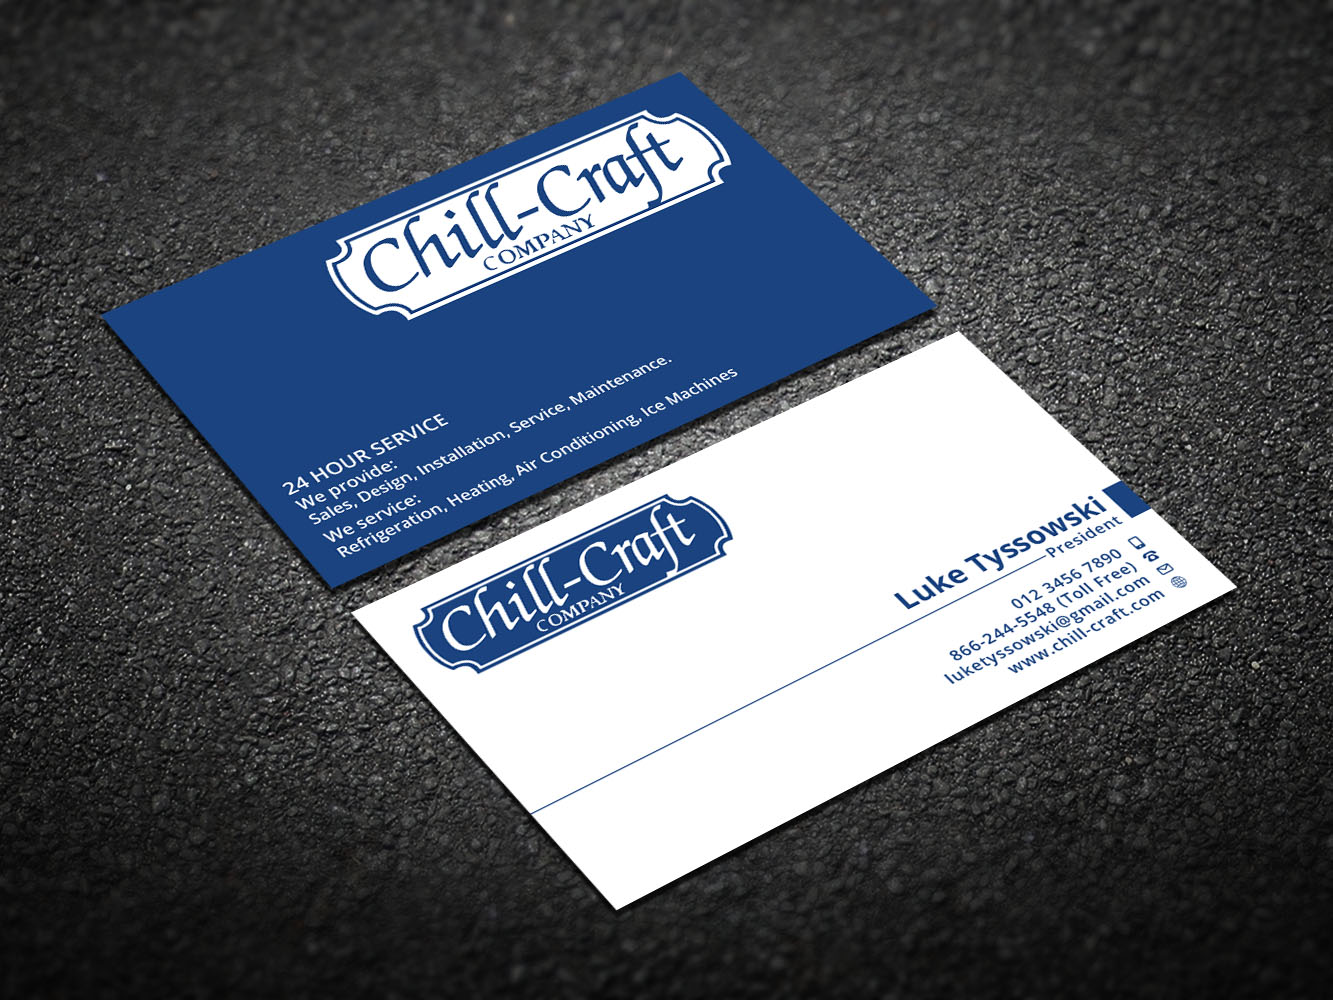 Modern professional hvac business card design for chill craft business card design by design xeneration for chill craft company design 9934837 wajeb